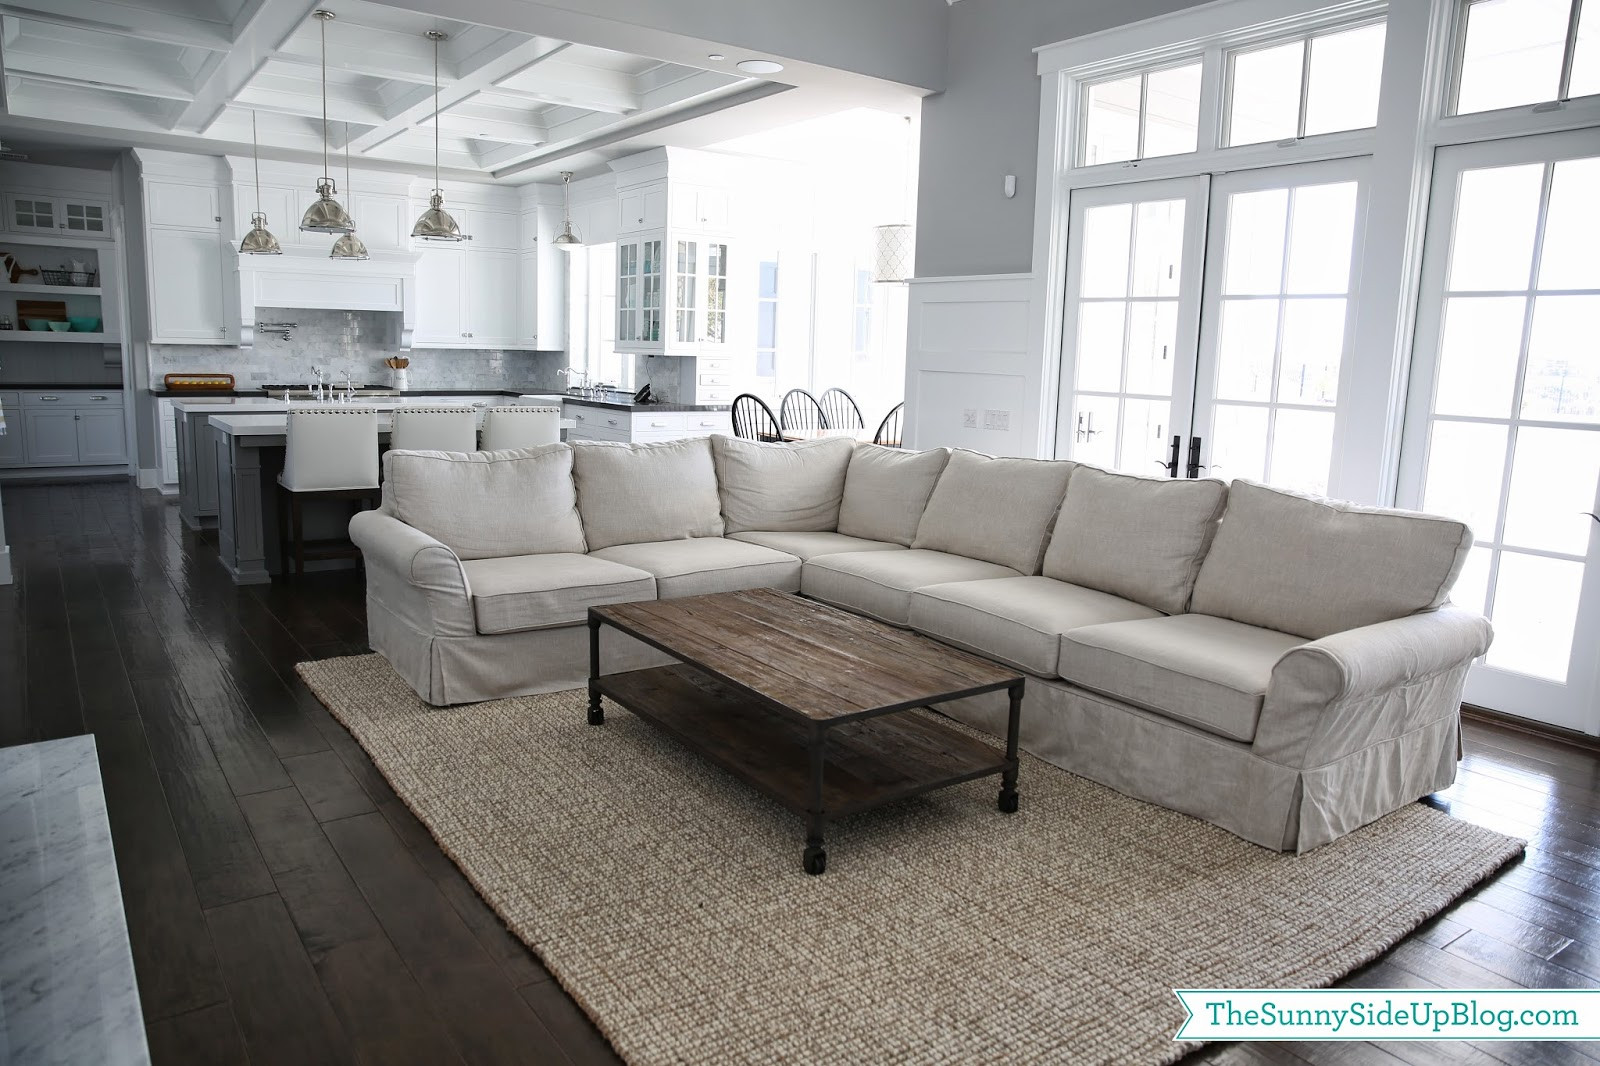 Best ideas about Family Room Rugs . Save or Pin Family Room Decor Update The Sunny Side Up Blog Now.